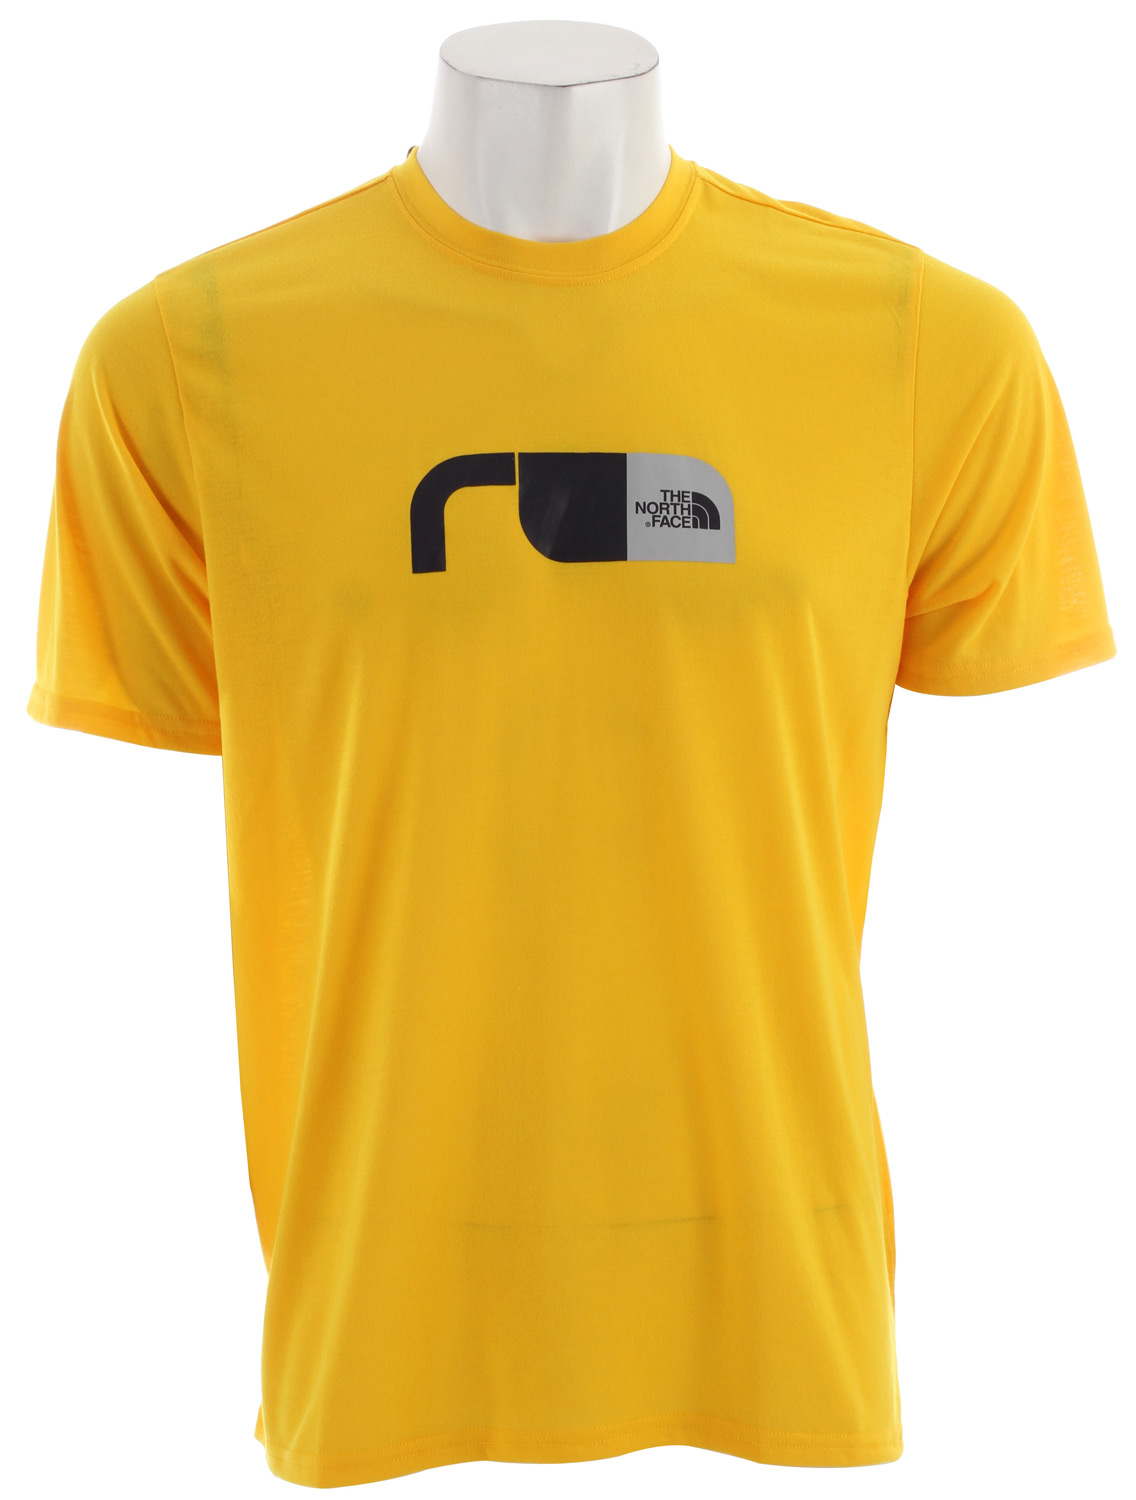 "Short-sleeve VaporWick tee provides excellent moisture management with a comfortable cotton feel, perfect for in-the-gym training. Key Features of the The North Face Graphic Reaxion Crew T-Shirt: Soft, ultralight fabric Relaxed fit Set-in sleeves Drop-tail hem Locker loop Center back: 27.5"" Fabric: 140 g/m2 100% polyester jersey - $16.95"